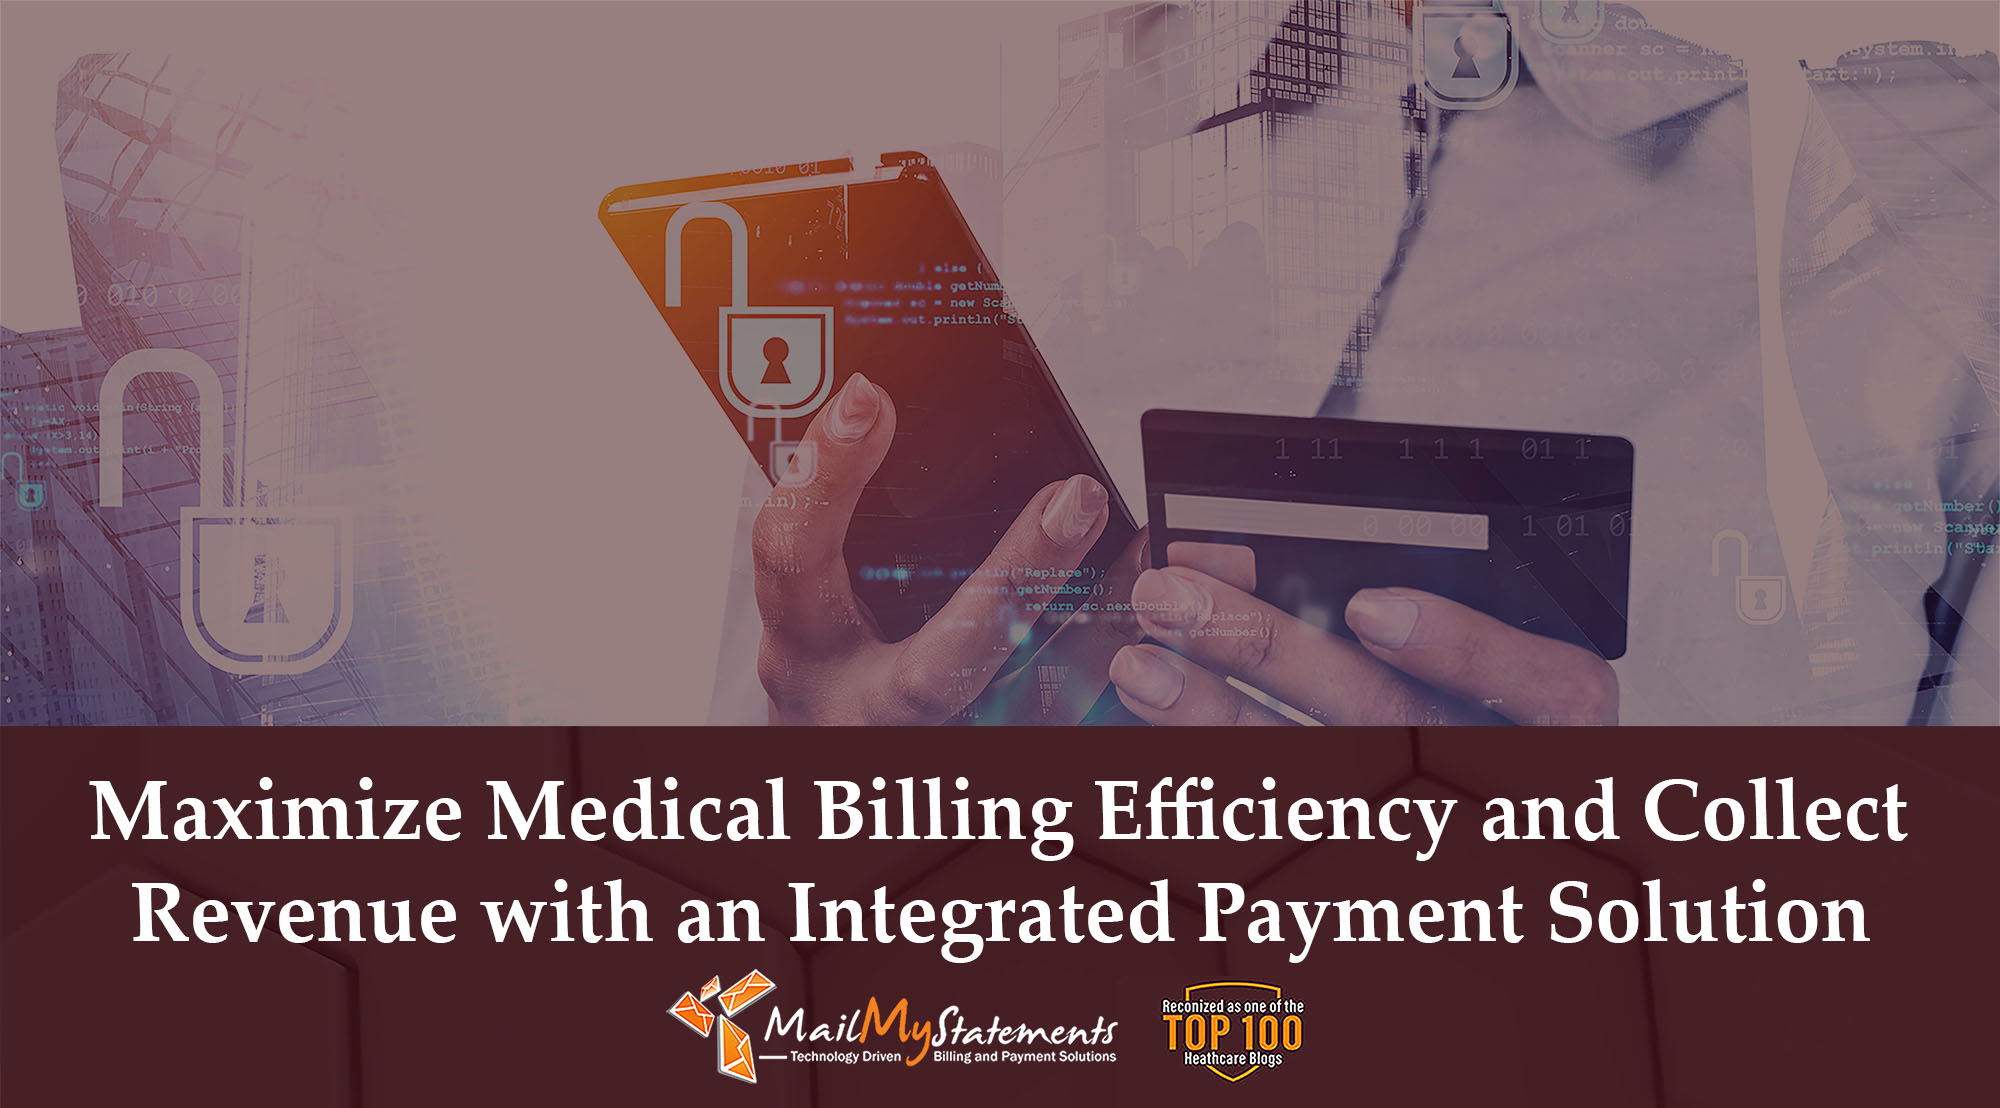 Maximize Medical Billing Efficiency and Collect Revenue with an Integrated Payment Solution